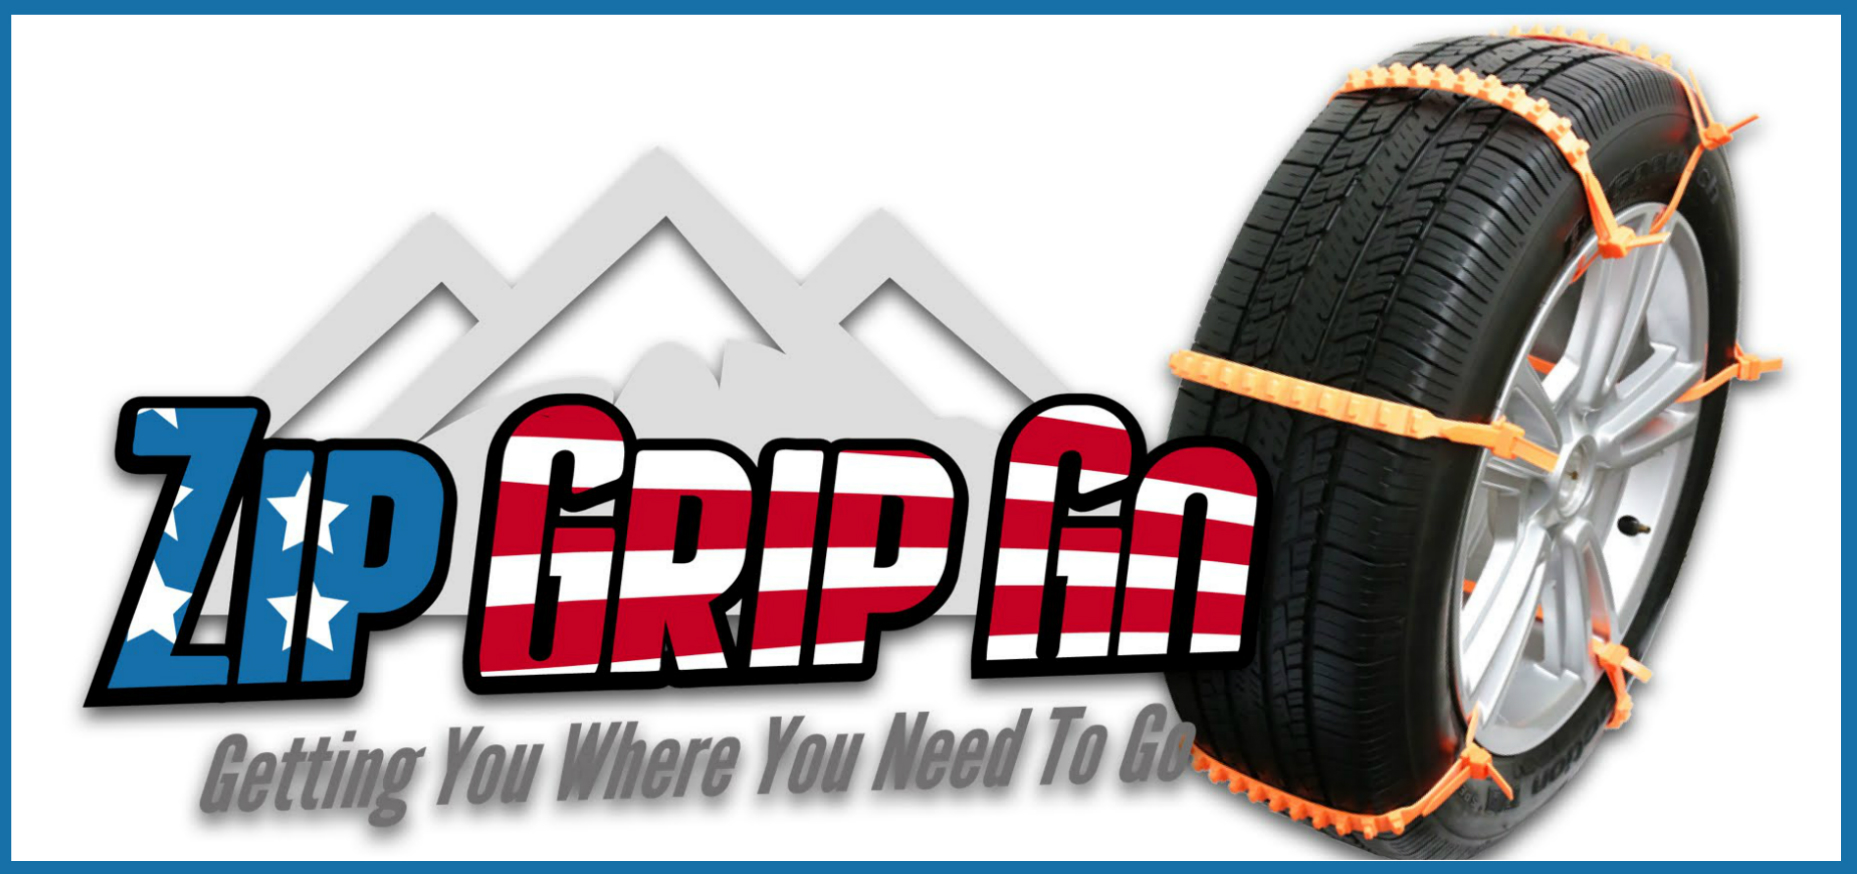 zip grip go is the easiest most affordable emergency tire traction device you can buy